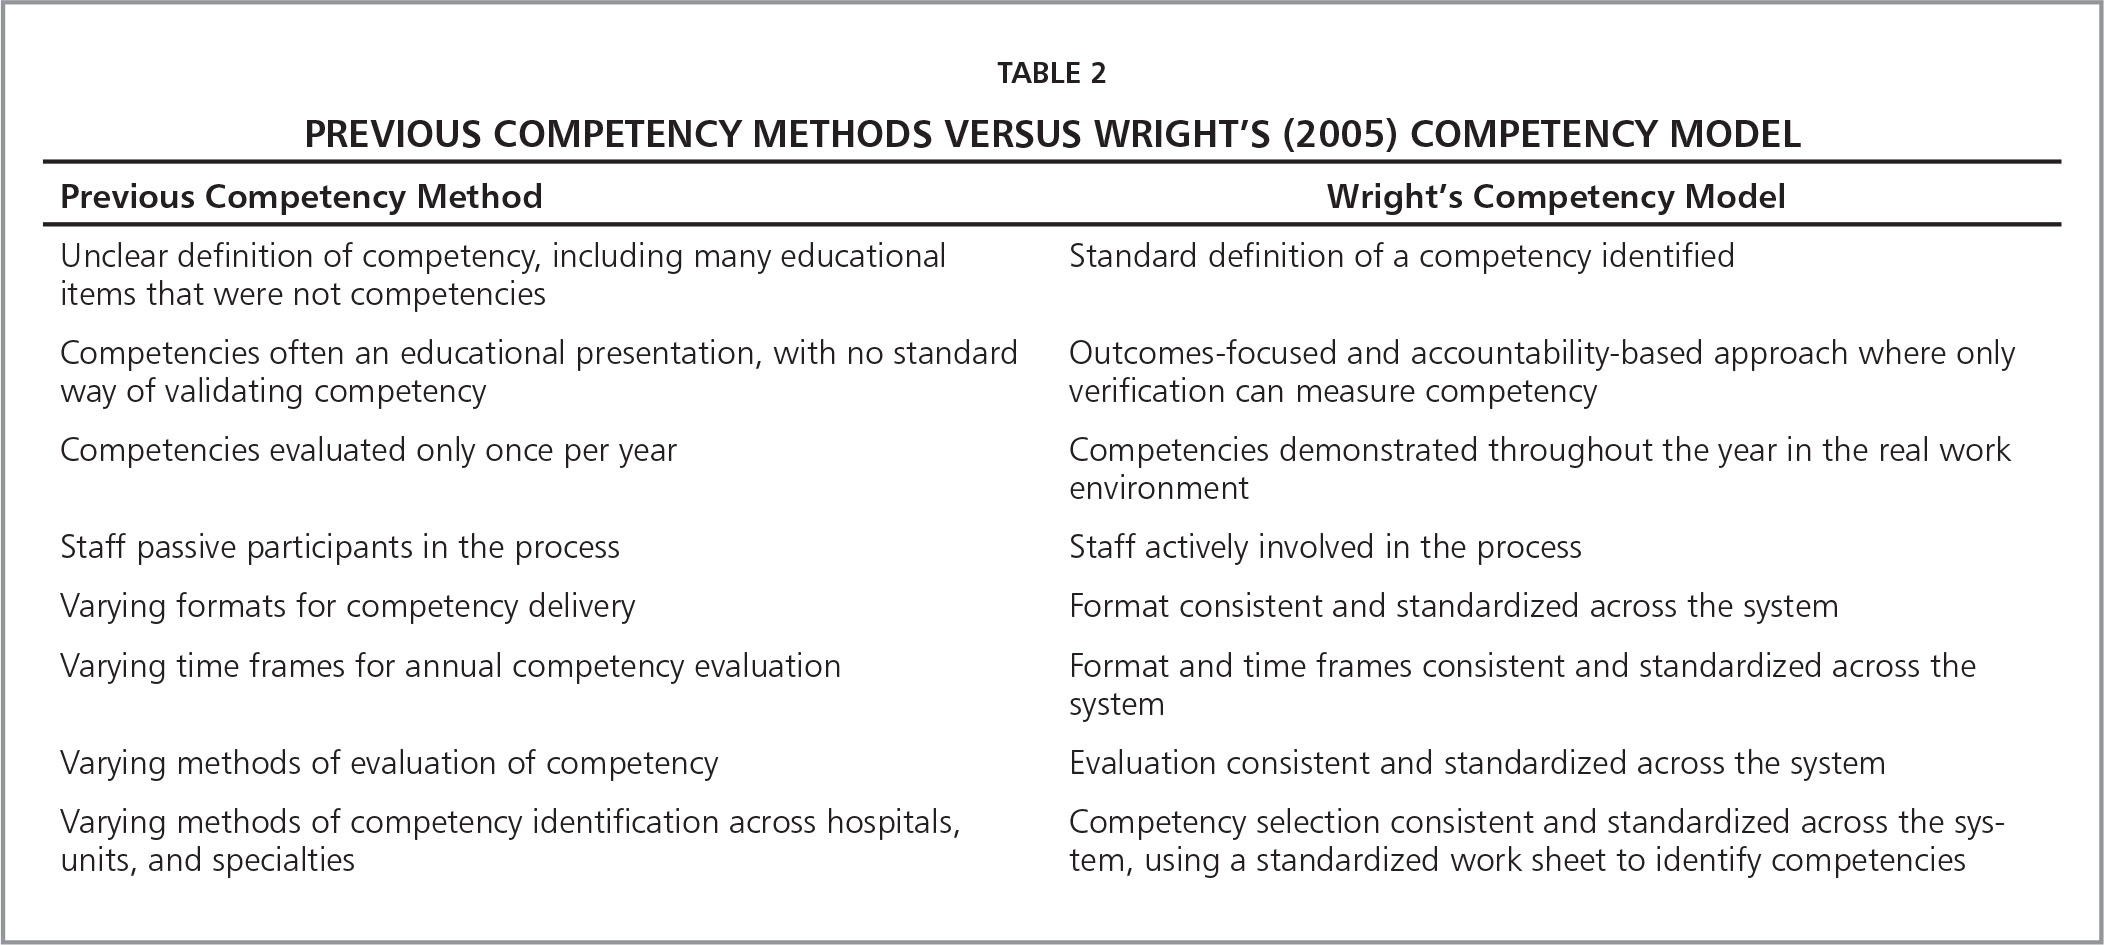 Previous Competency Methods Versus Wright's (2005) Competency Model